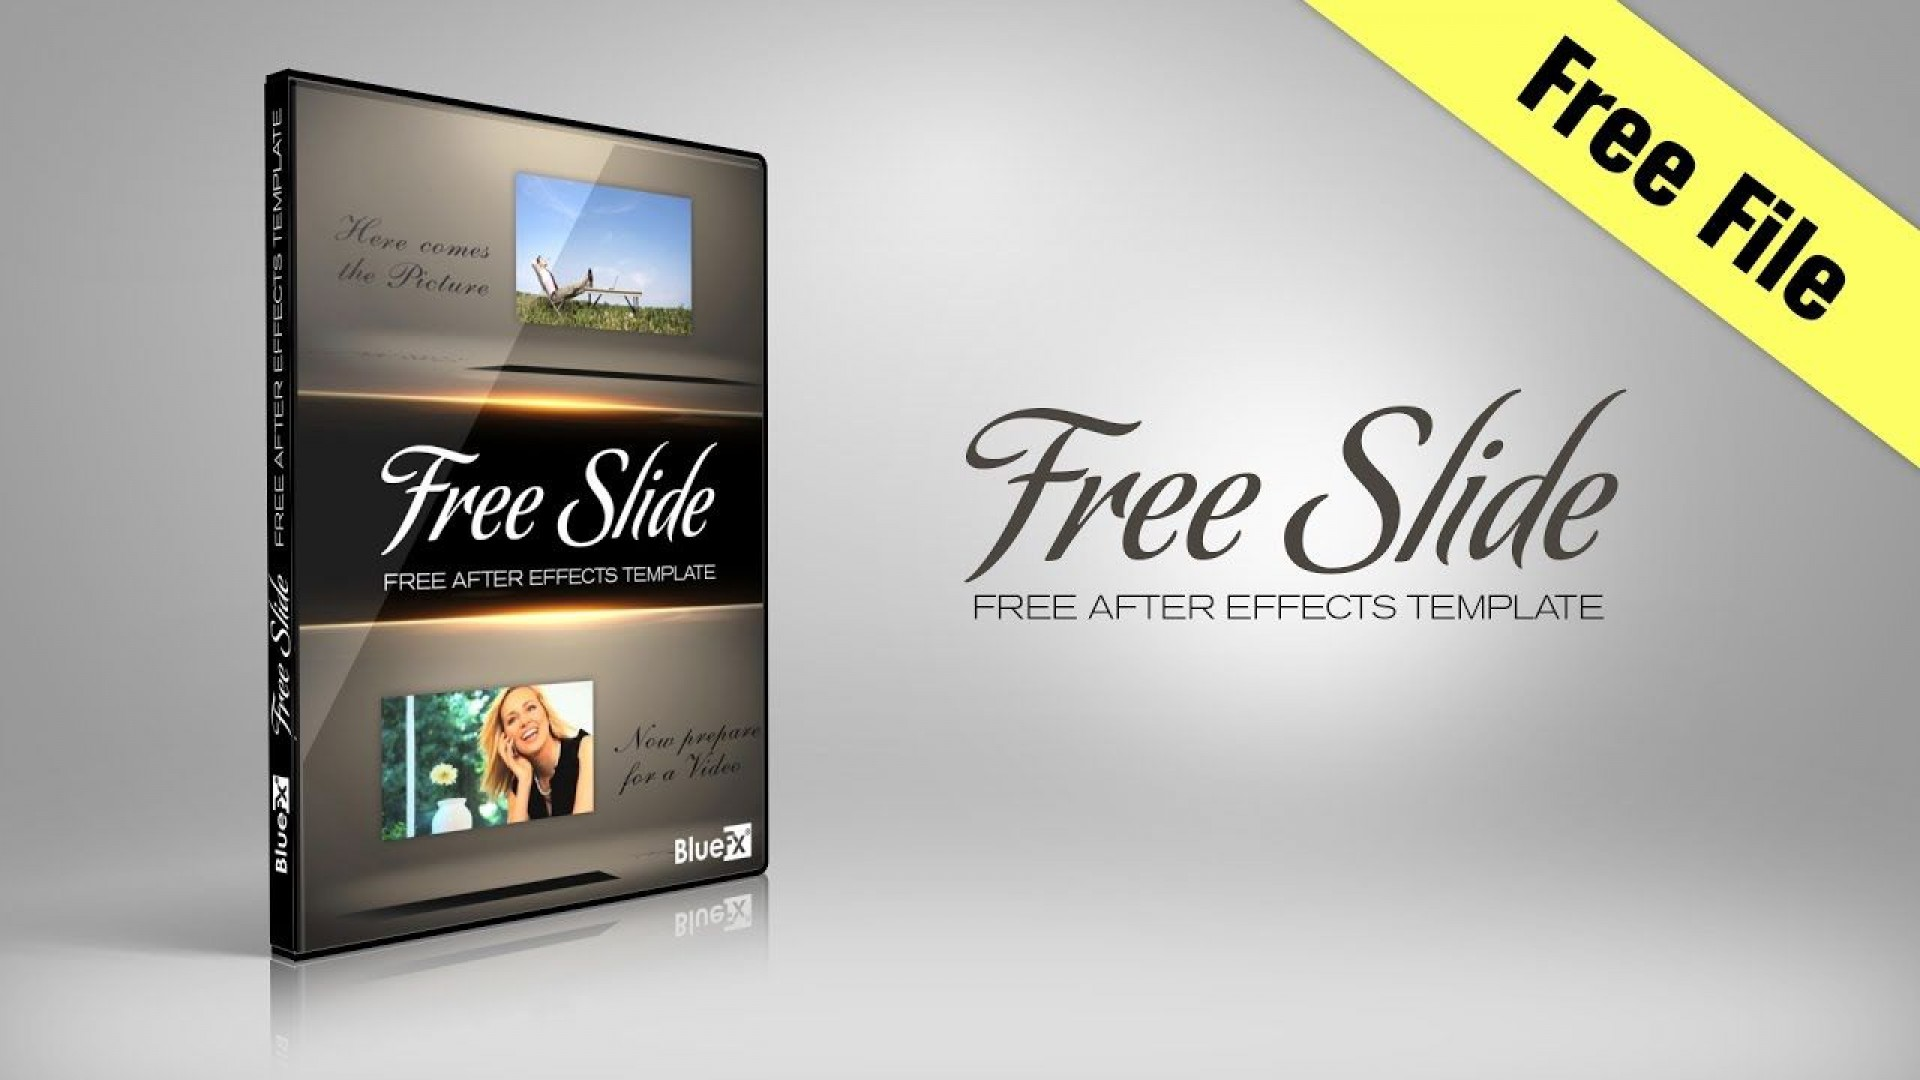 002 Marvelou Free Adobe After Effect Template Slideshow Design  Wedding Download Videohive Watercolor Ink -1920